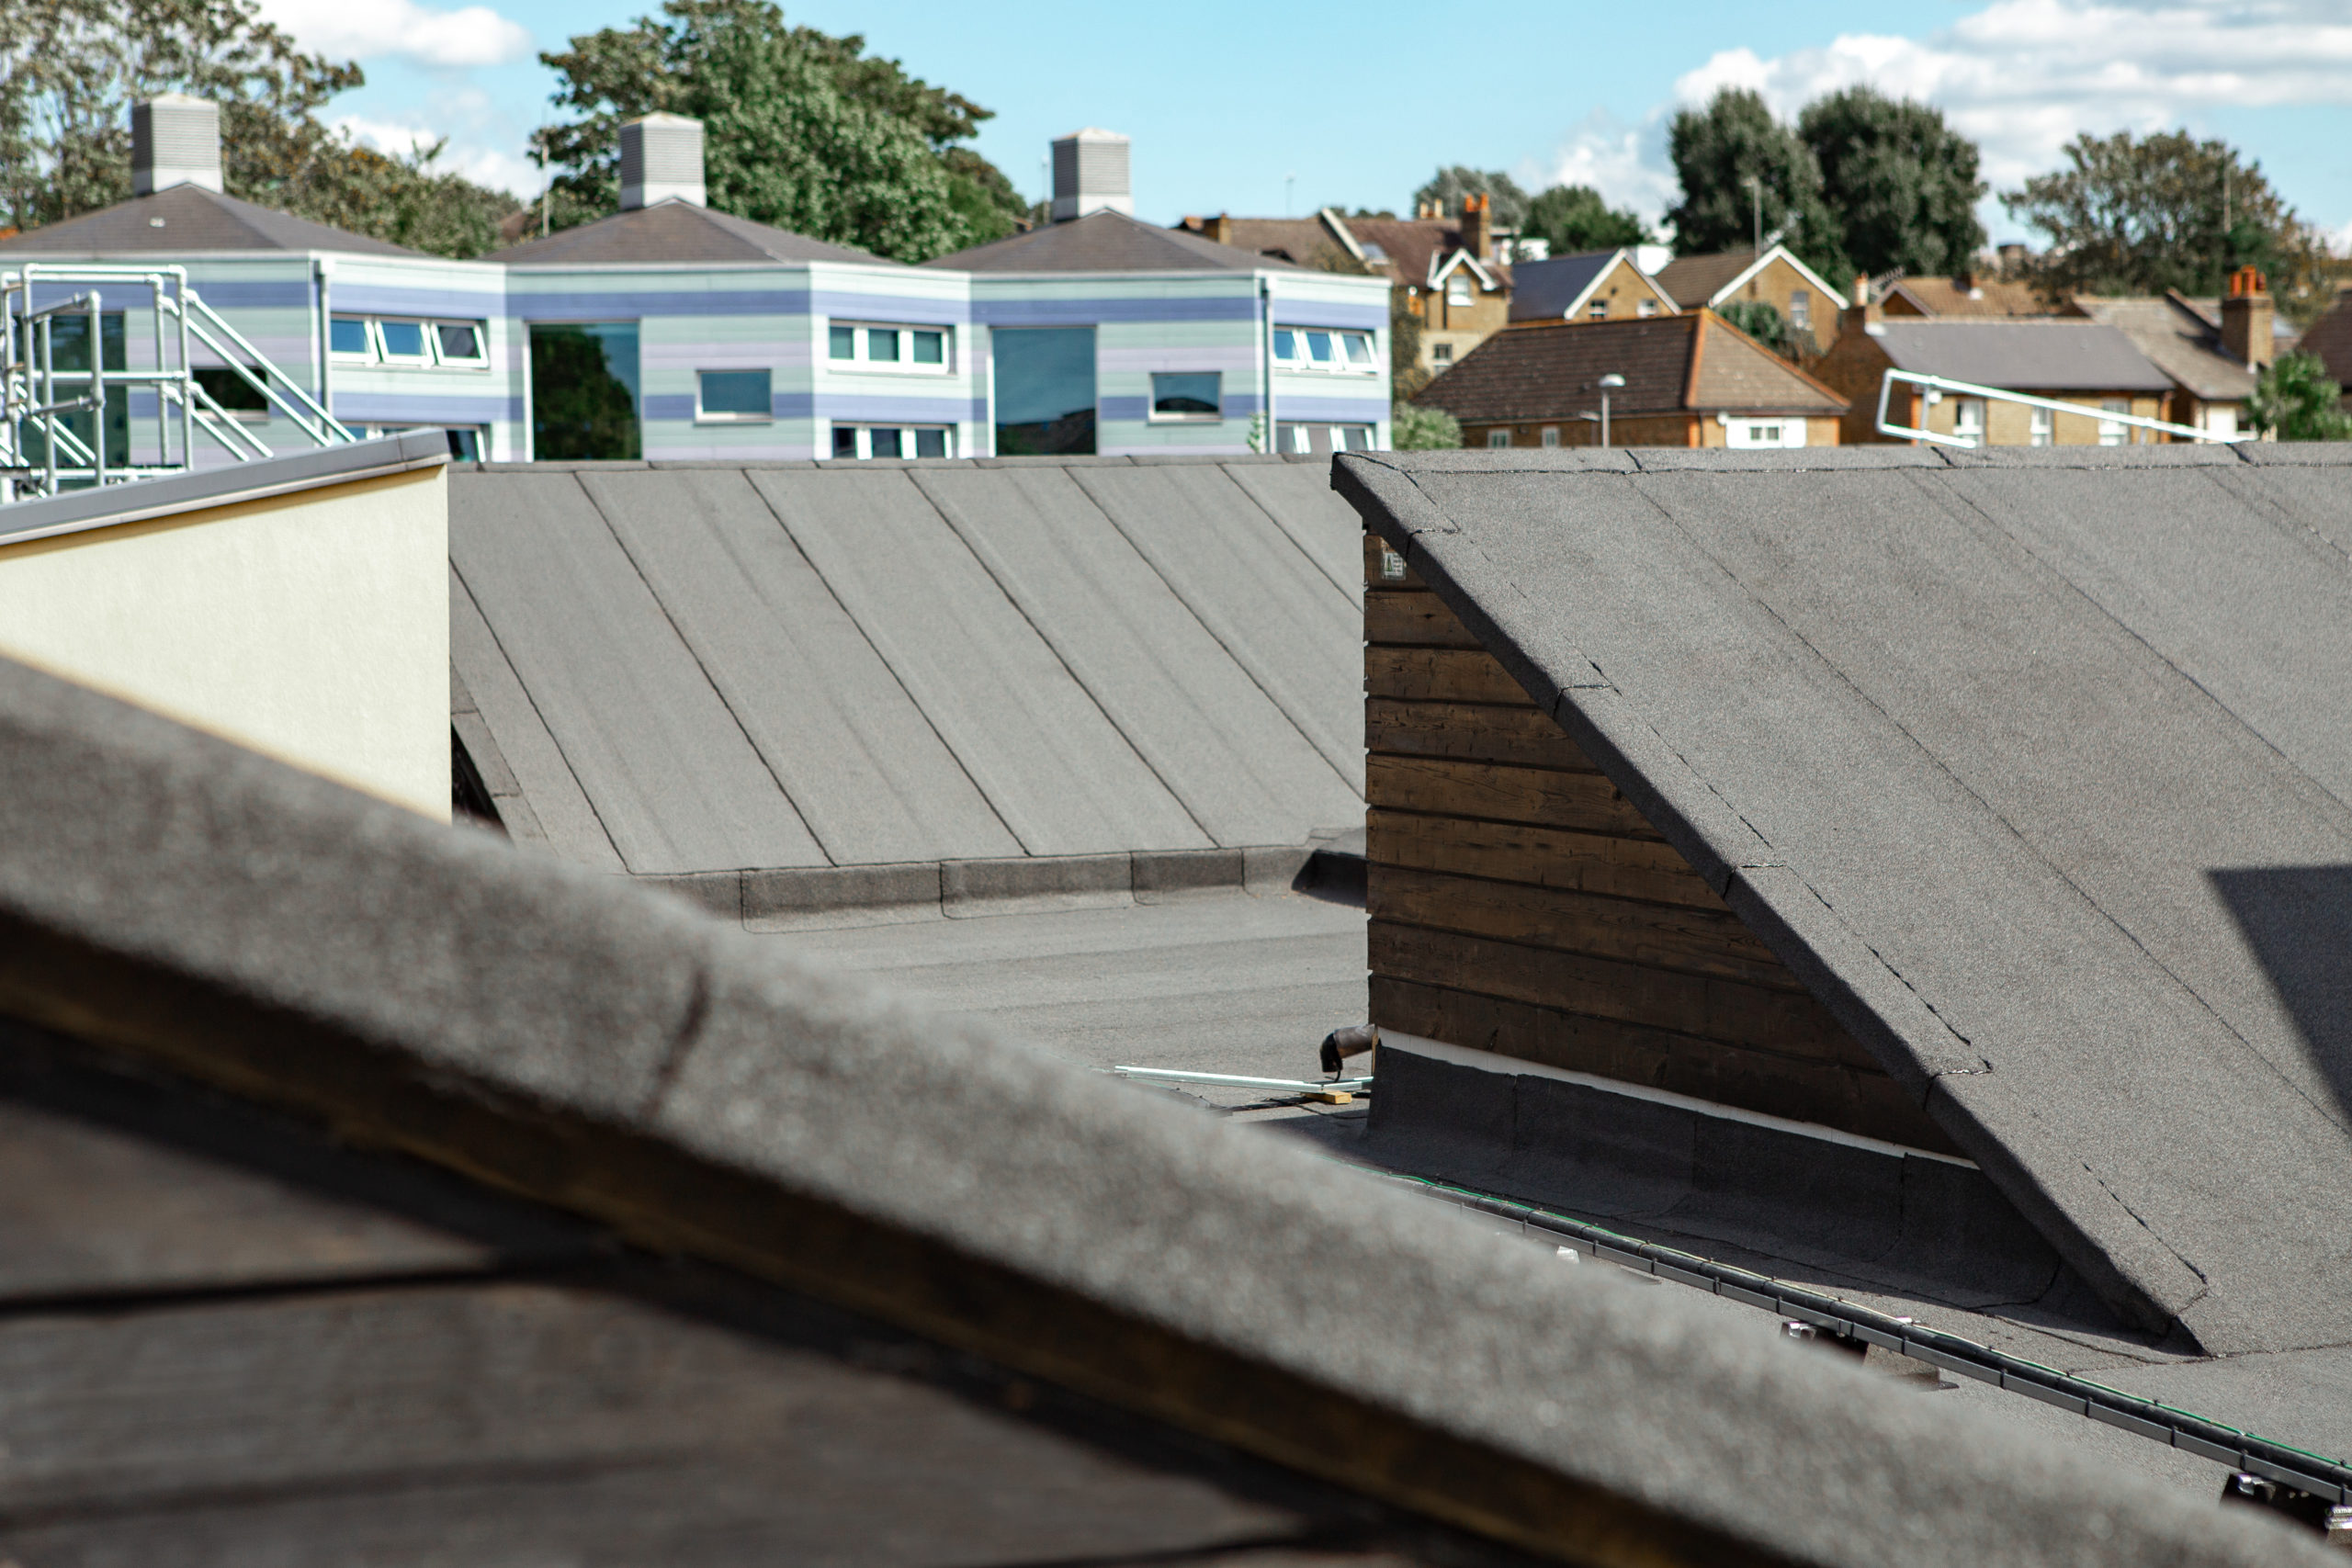 Felt roof with rooflight and cable runners and cladding